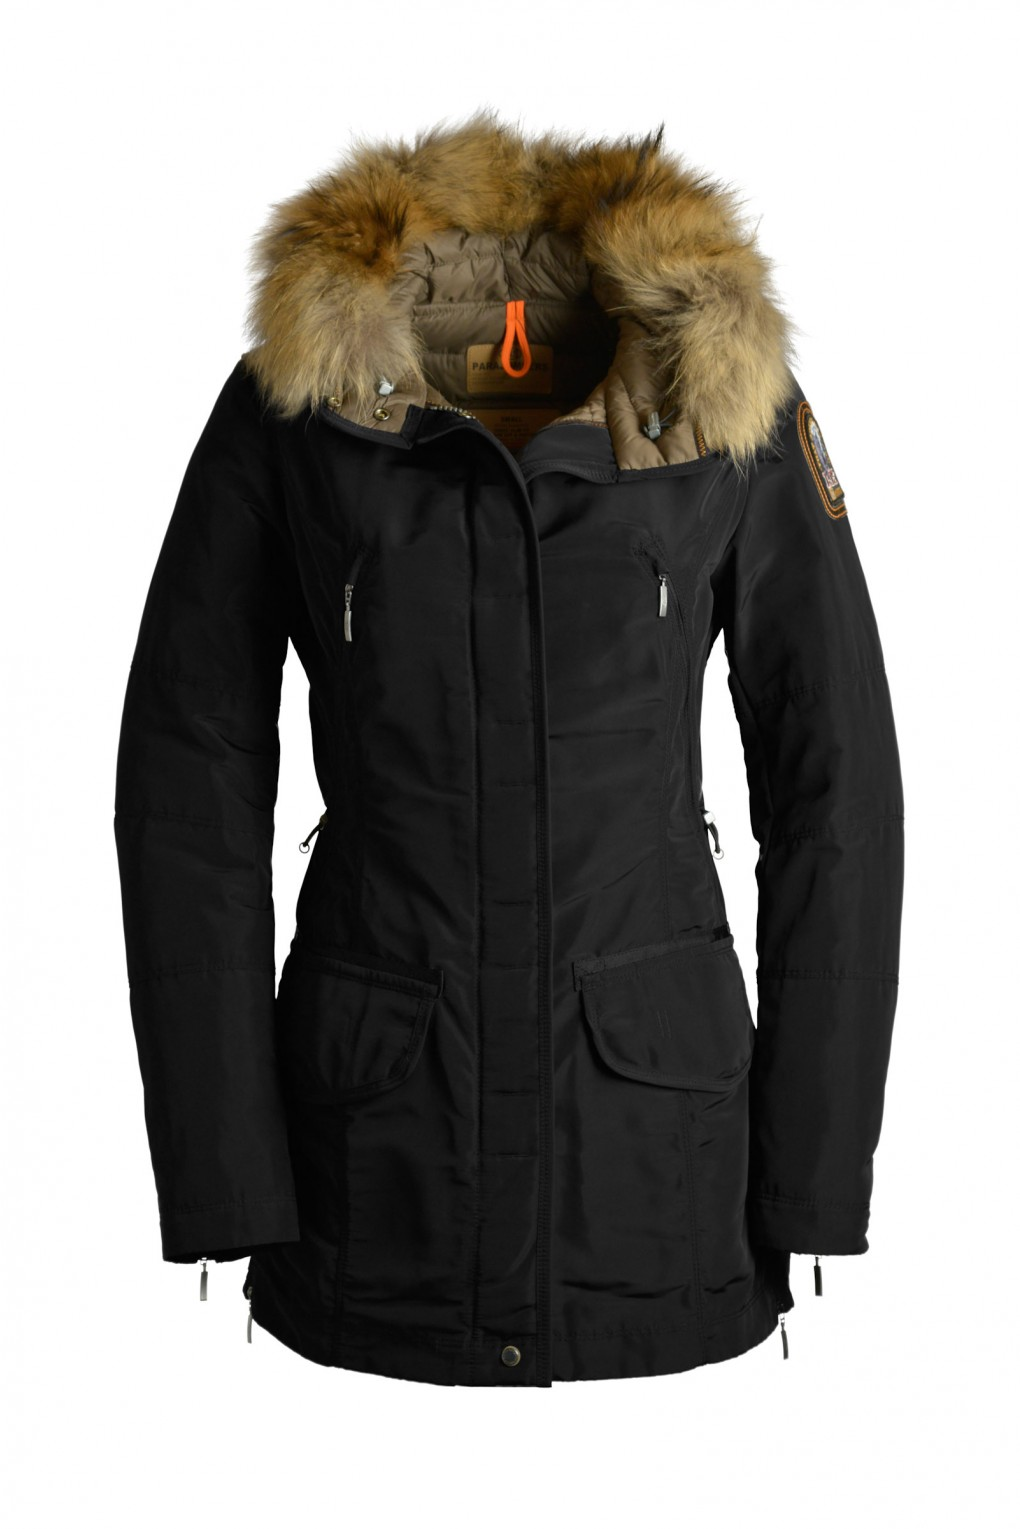 parajumpers RITA woman outerwear Black